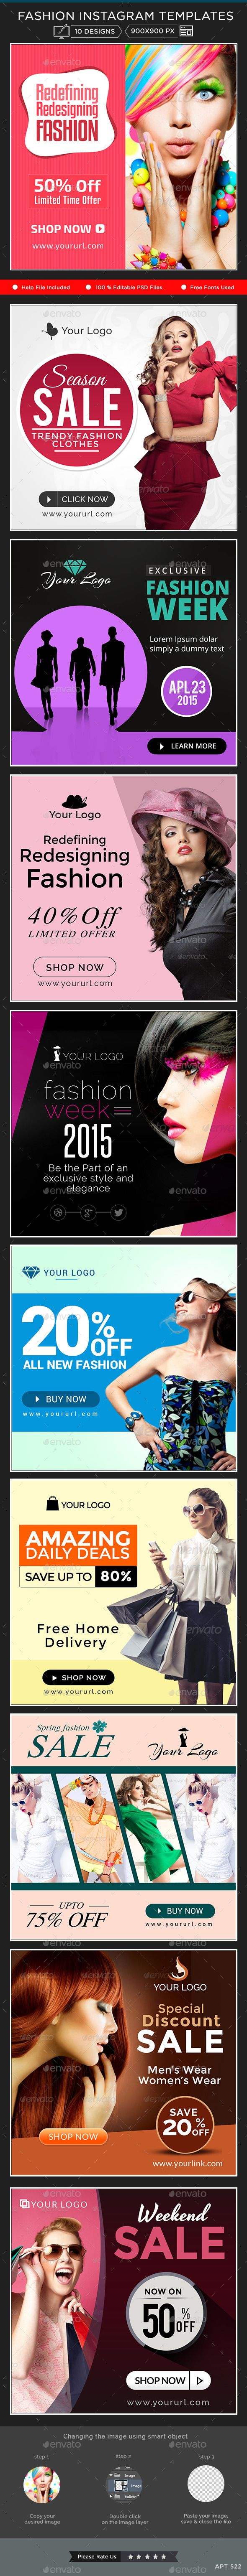 Fashion Instagram Banners - 10 Designs - Banners & Ads Web Template PSD. Download here: http://graphicriver.net/item/fashion-instagram-banners-10-designs/10998272?s_rank=1771&ref=yinkira